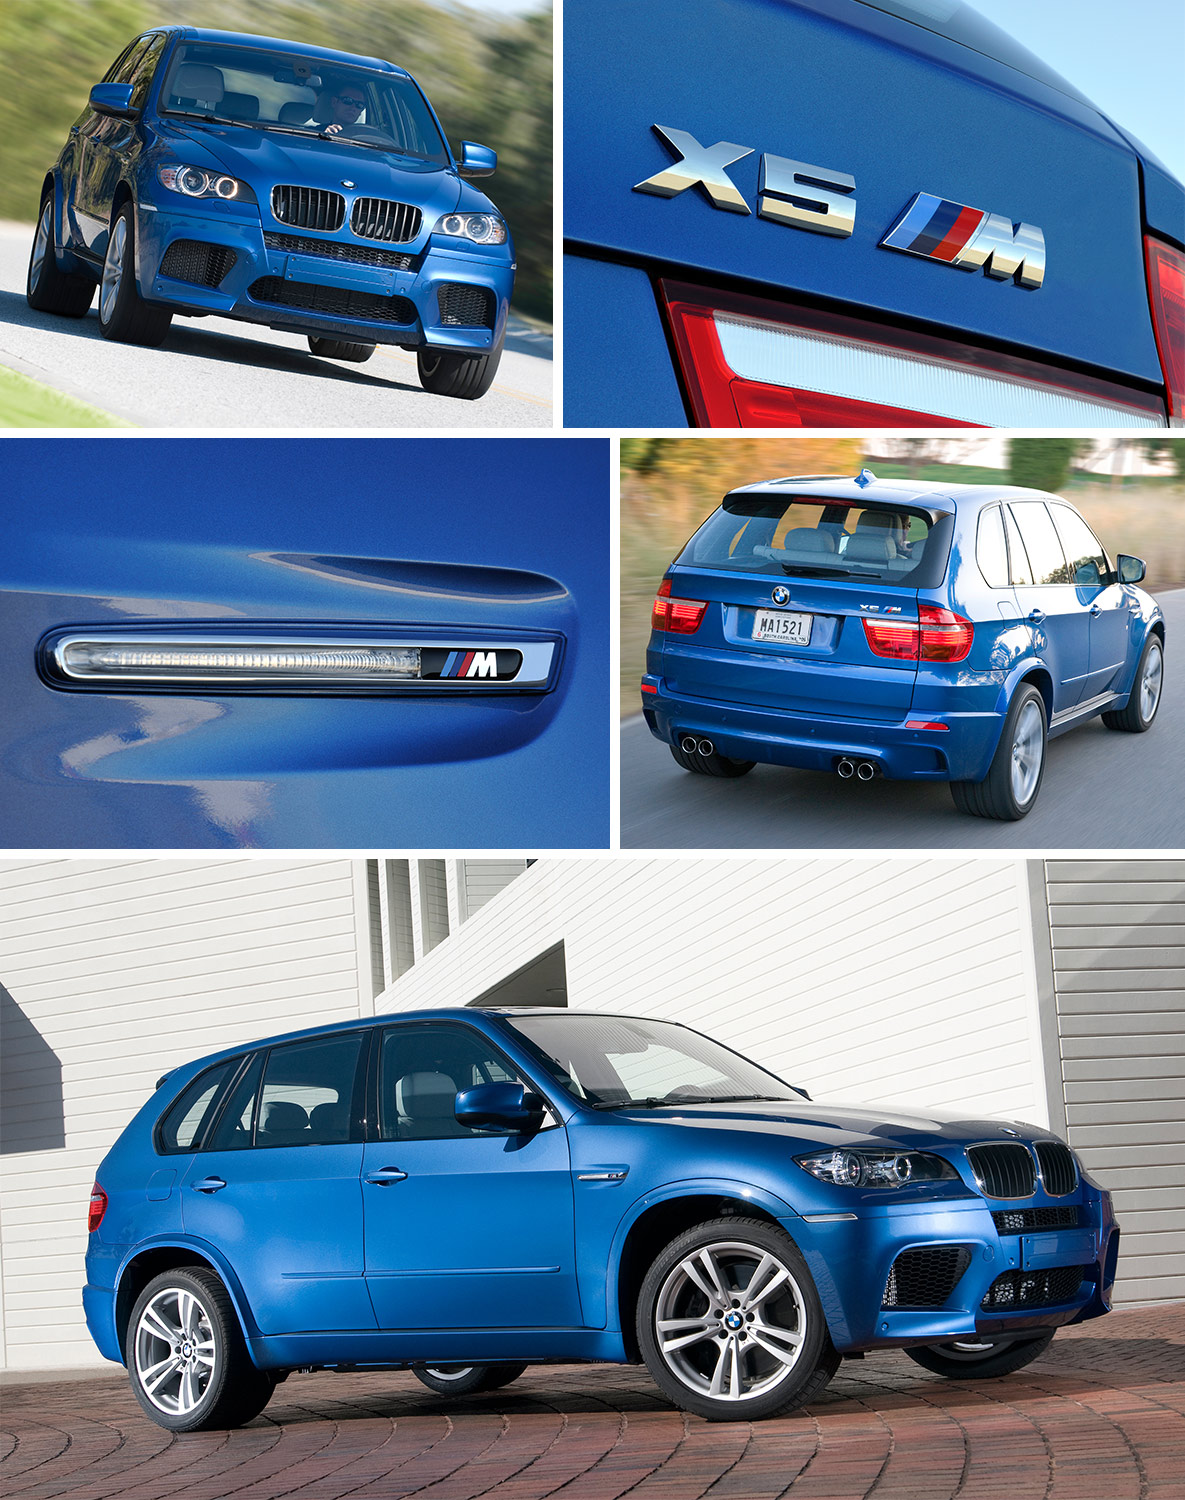 Blue BMW X5 M of the first generation (E70)